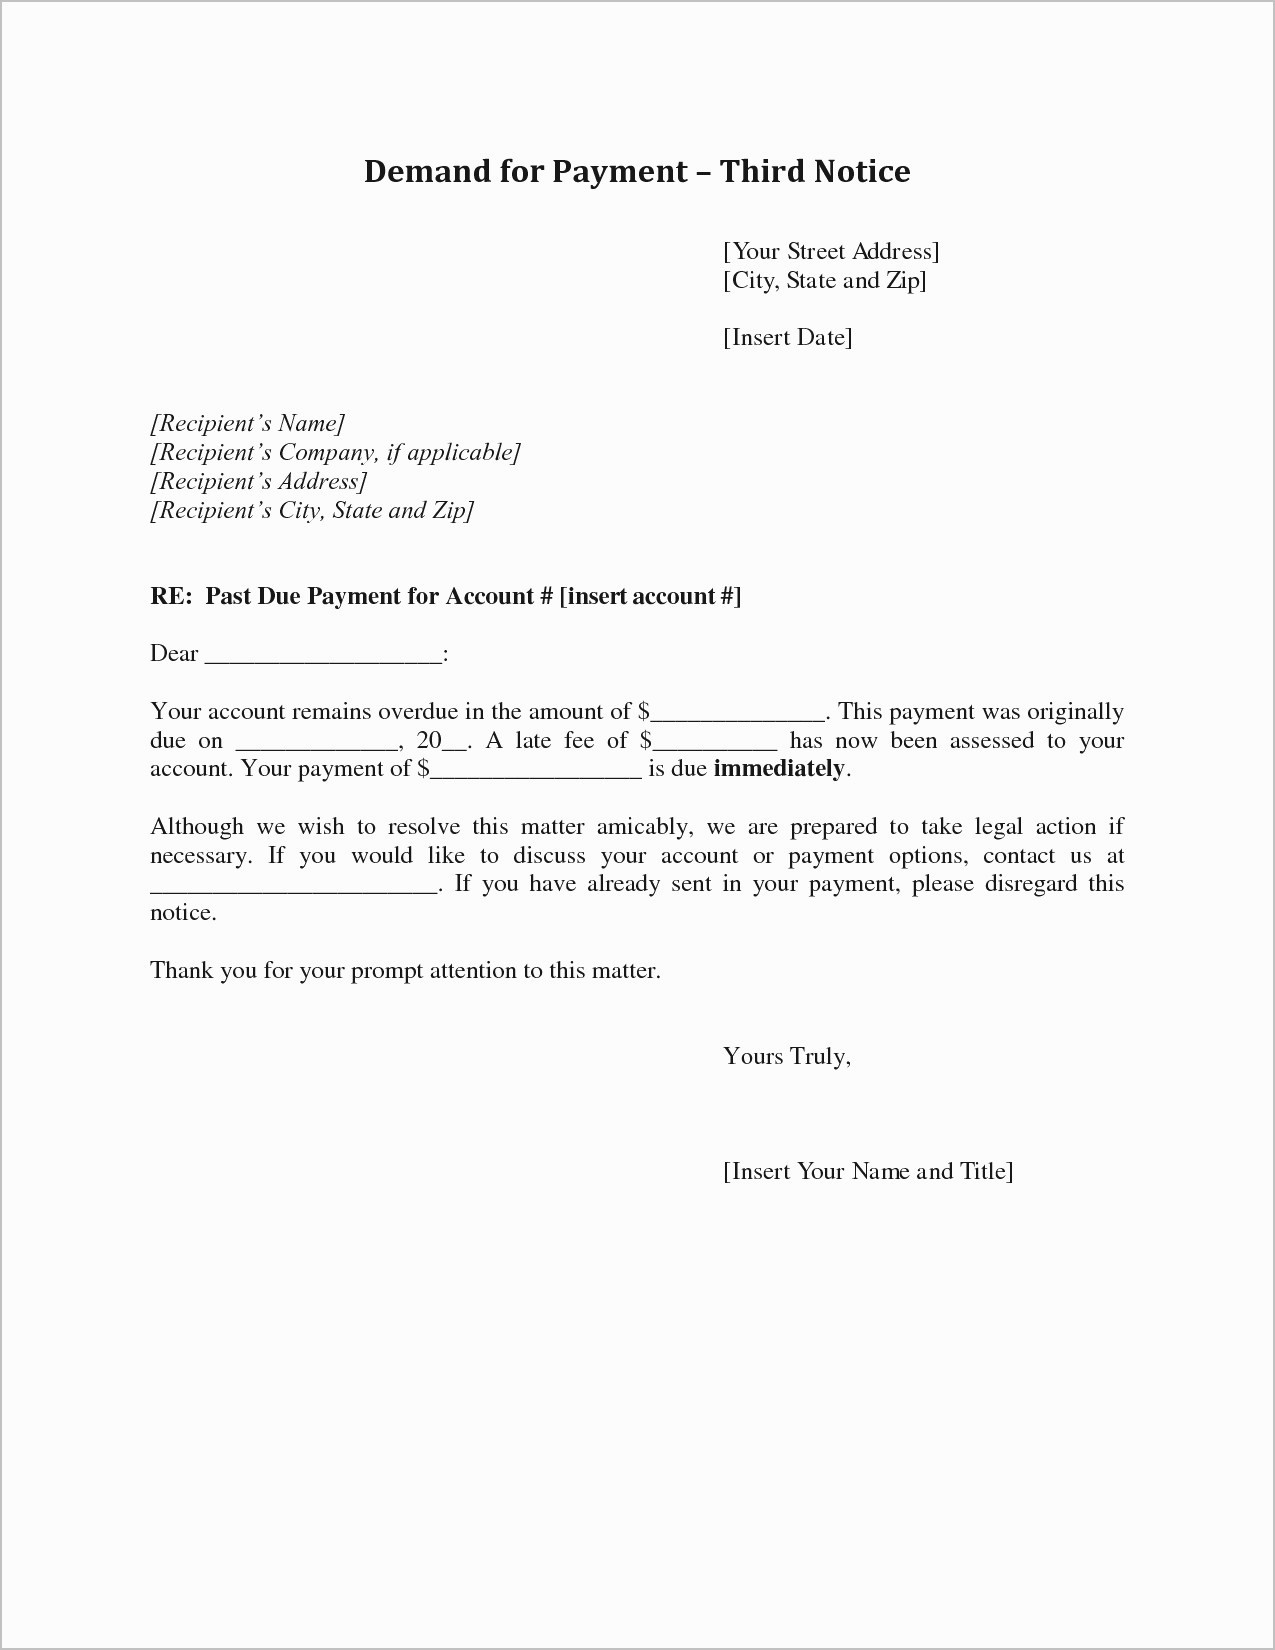 Rent Free Letter Template for Mortgage - Homeowners Insurance Non Renewal Letter Unique Sample Demand Letter